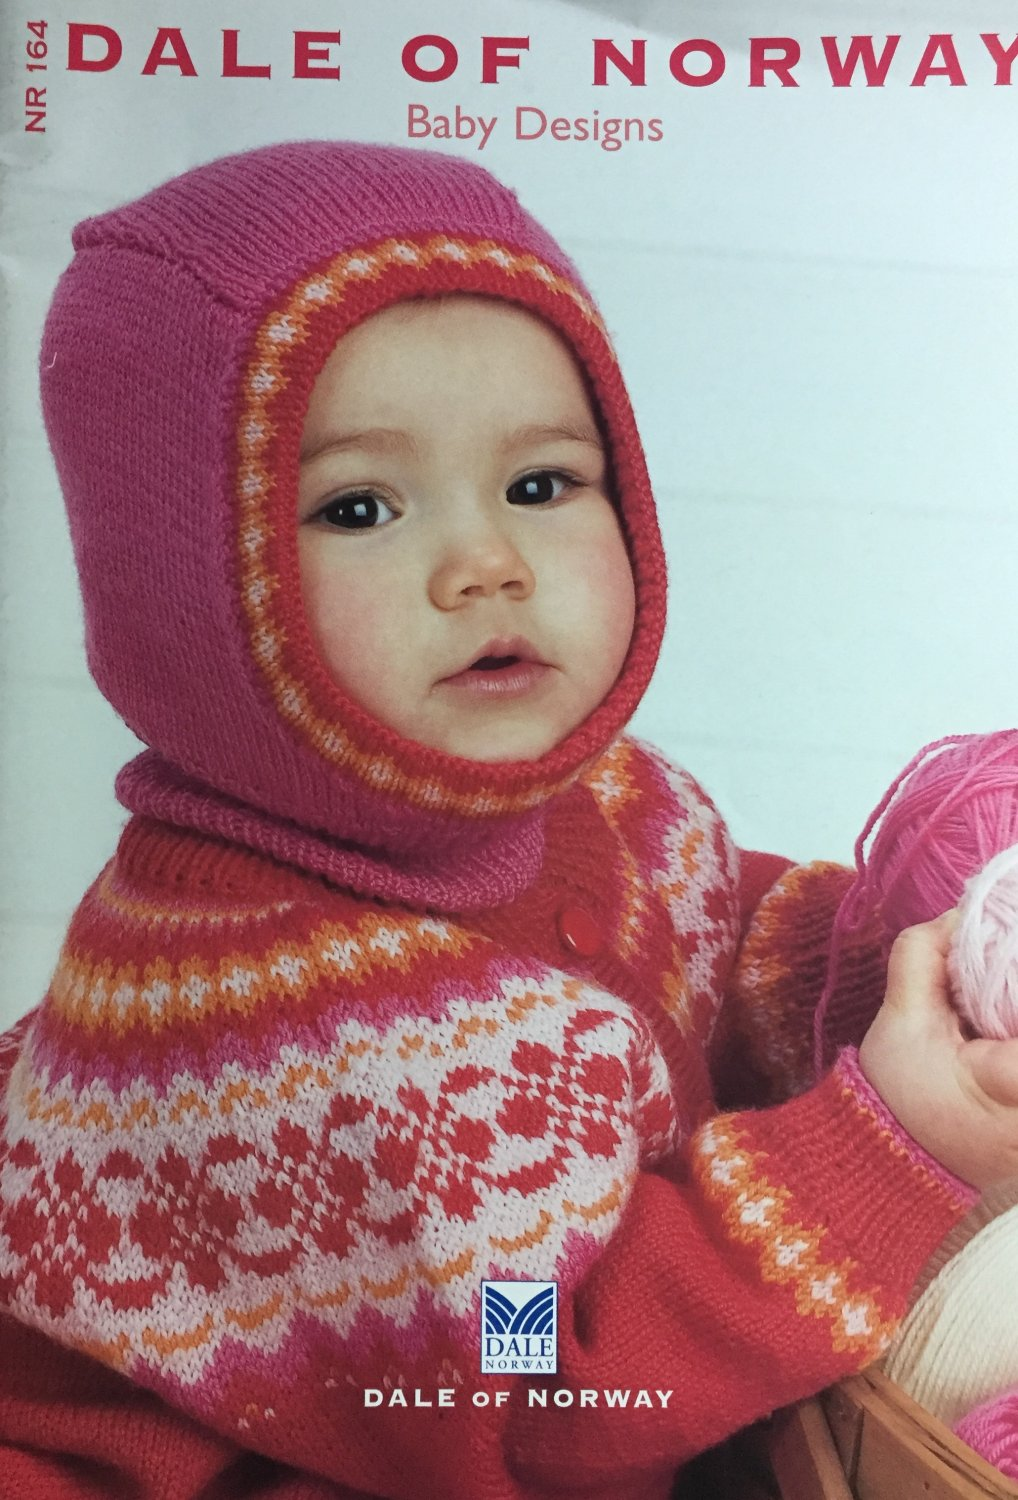 Dale of Norway 164 Knitting Patterns  for Babies Designs